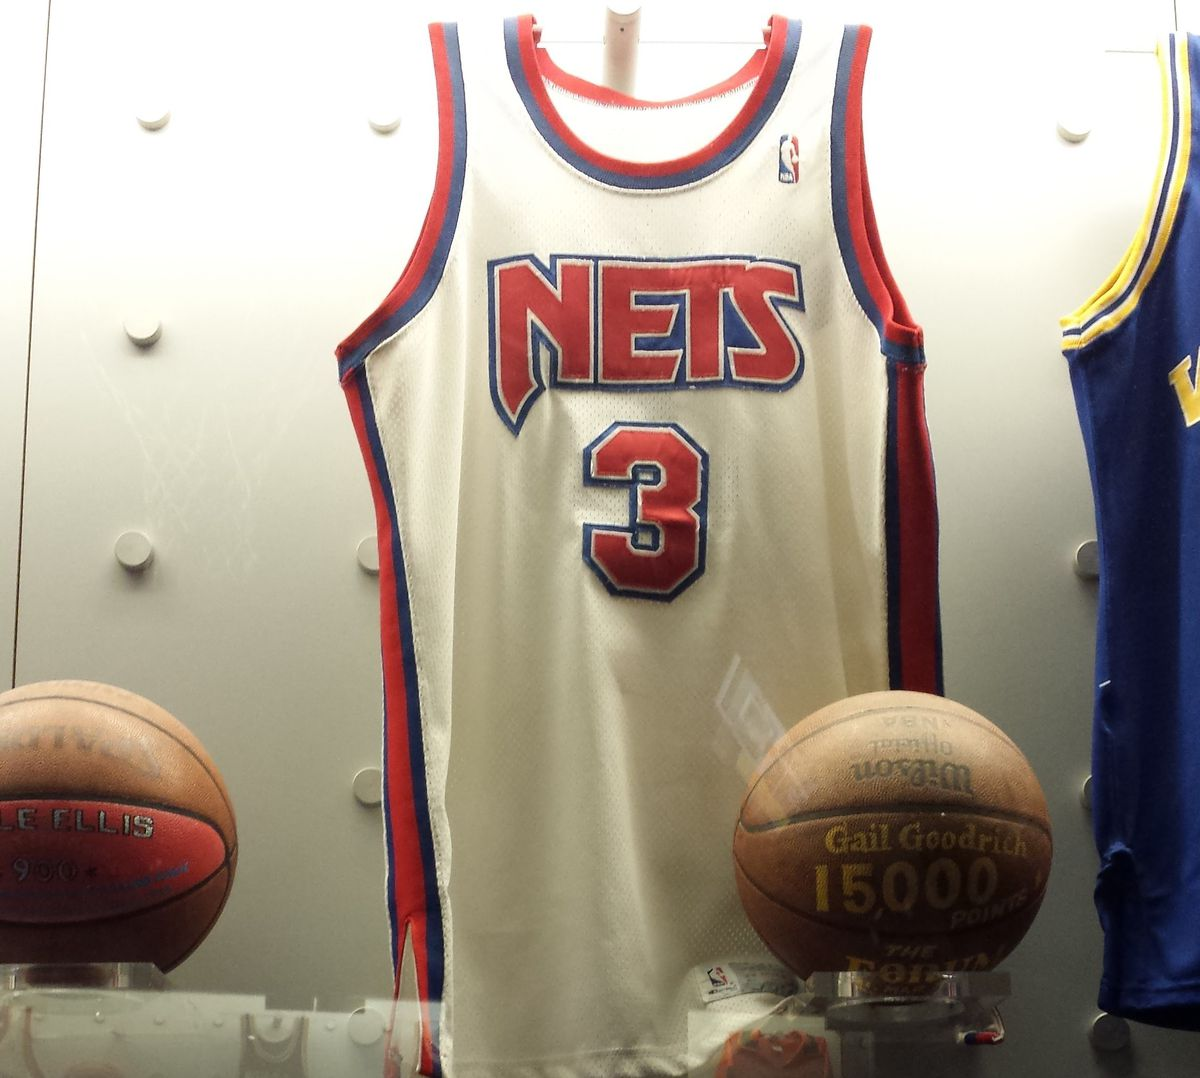 Nets white jersey with red lettering